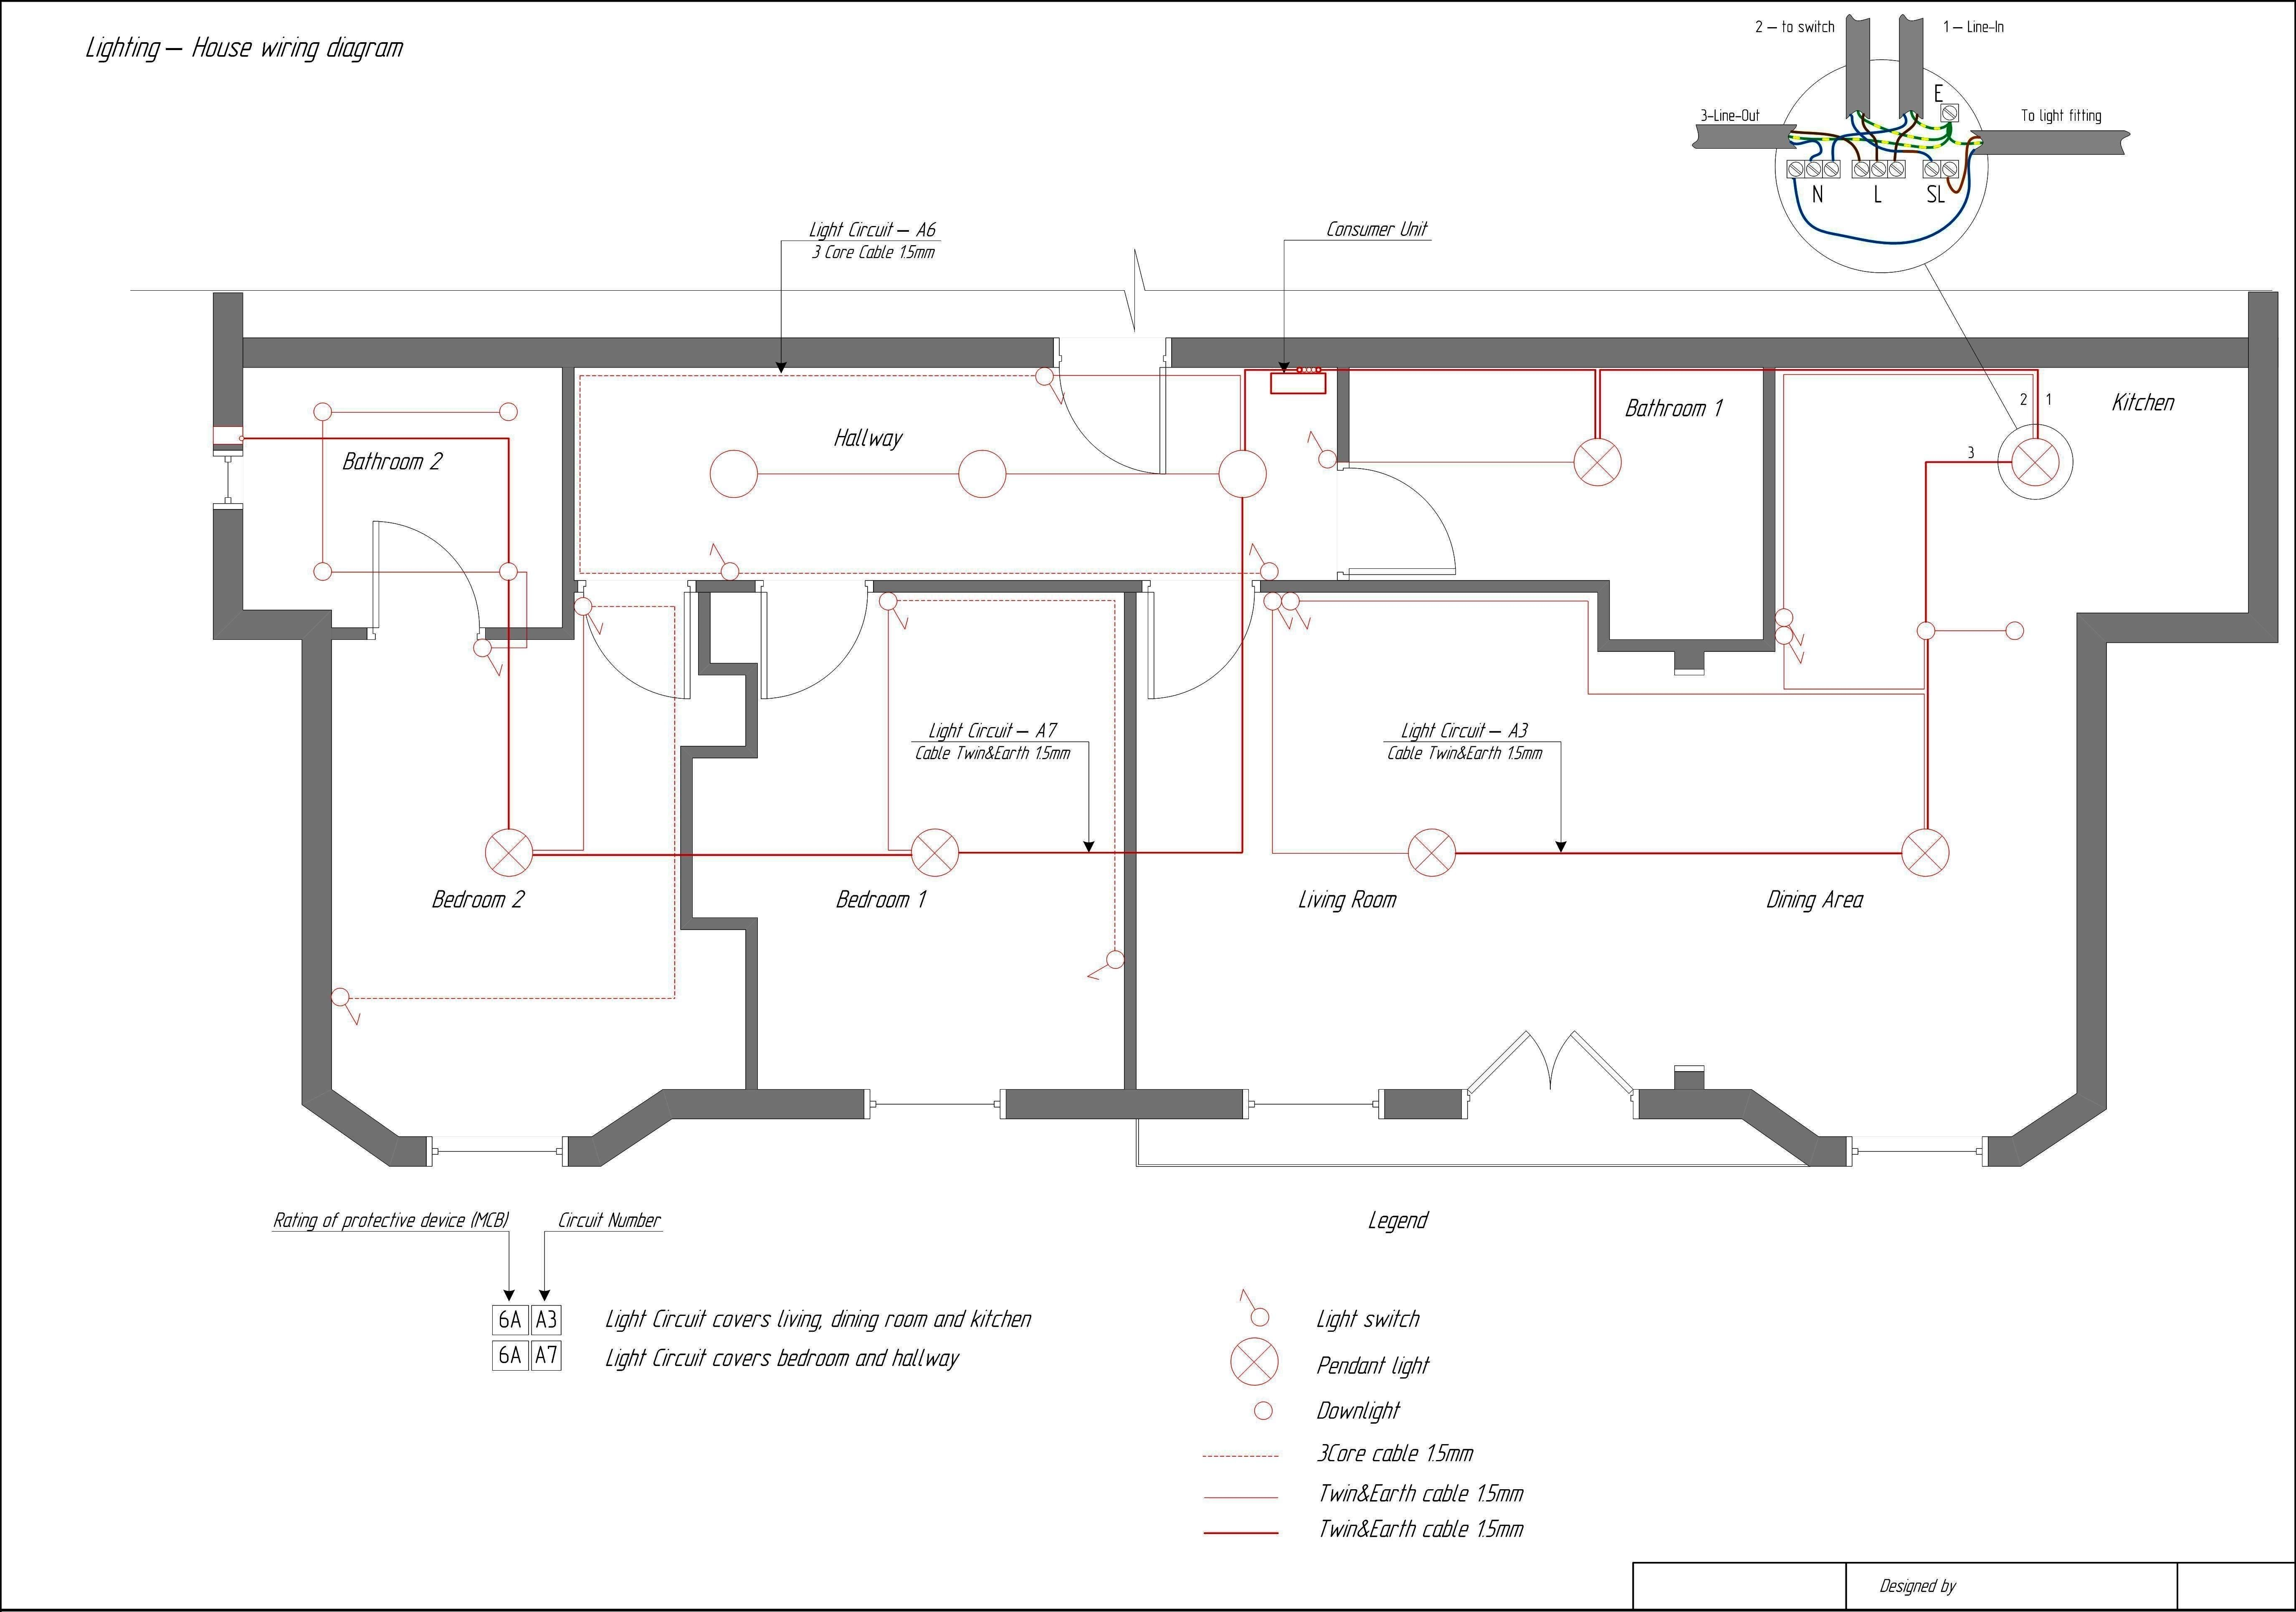 Single Phase Wiring Diagram For House | House wiring, Home ... on light switch piping diagram, light switch cabinet, light switch with receptacle, light switch cover, wall light switch diagram, dimmer switch installation diagram, circuit diagram, light switch timer, light switch power diagram, light switch installation, electrical outlets diagram,